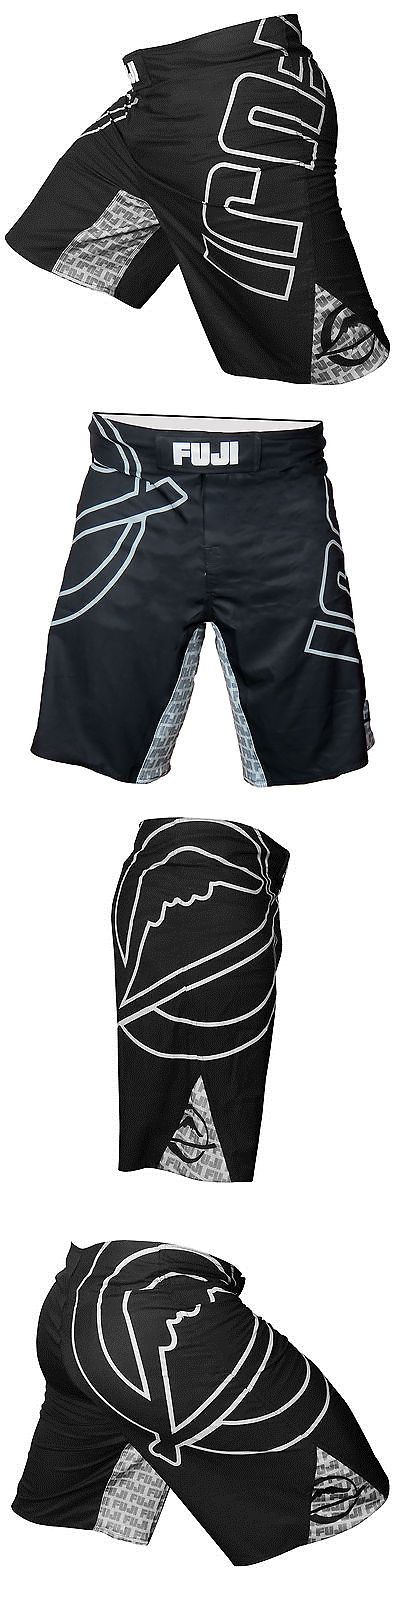 Shorts 73982: Fuji Inverted Fight Shorts -> BUY IT NOW ONLY: $48.99 on eBay!